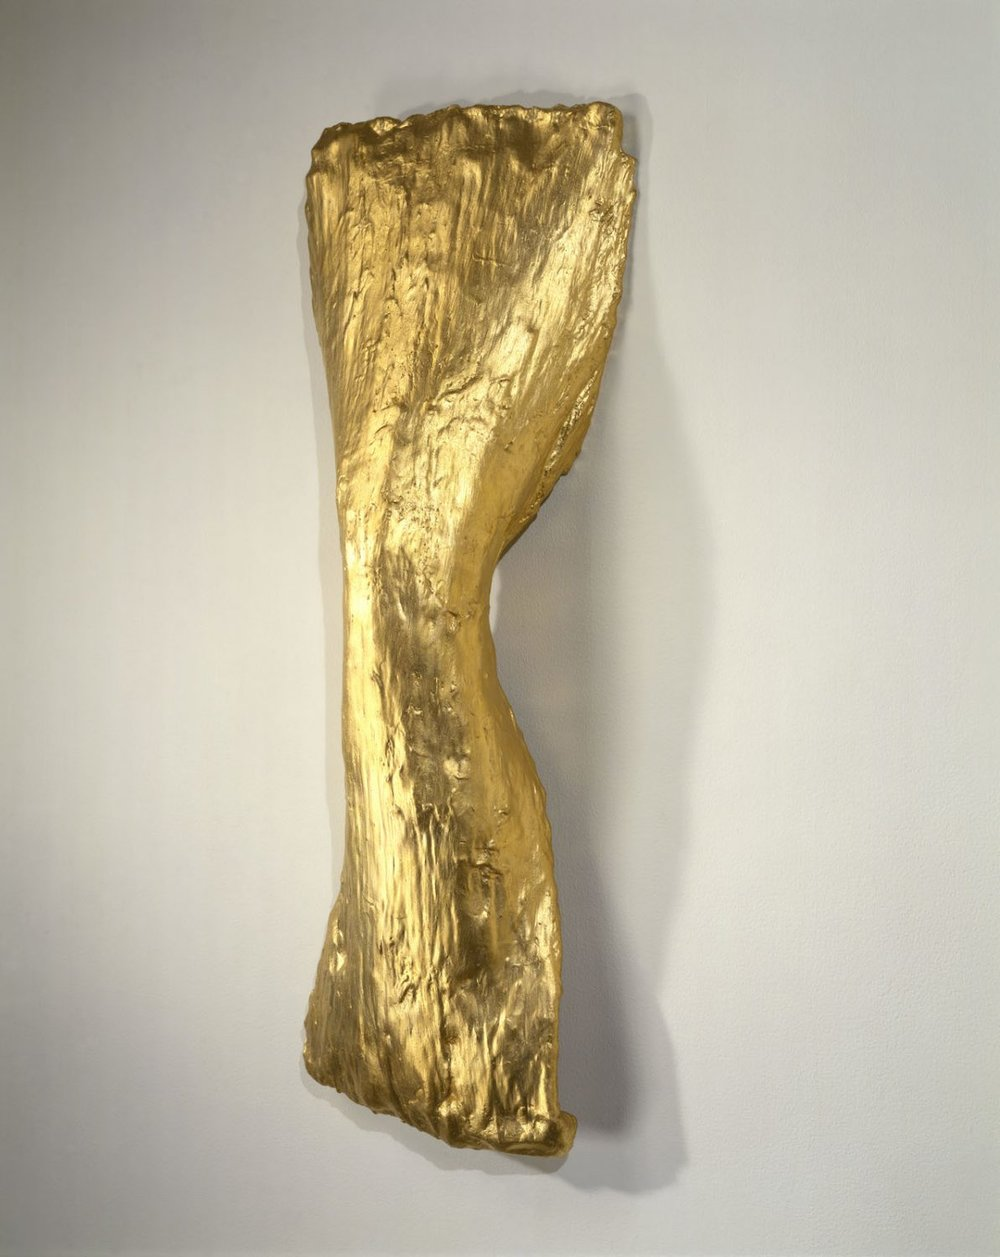 lynda-benglis_spindle_1977_aware_women-artists_-artistes-femmes-1193x1500.jpg